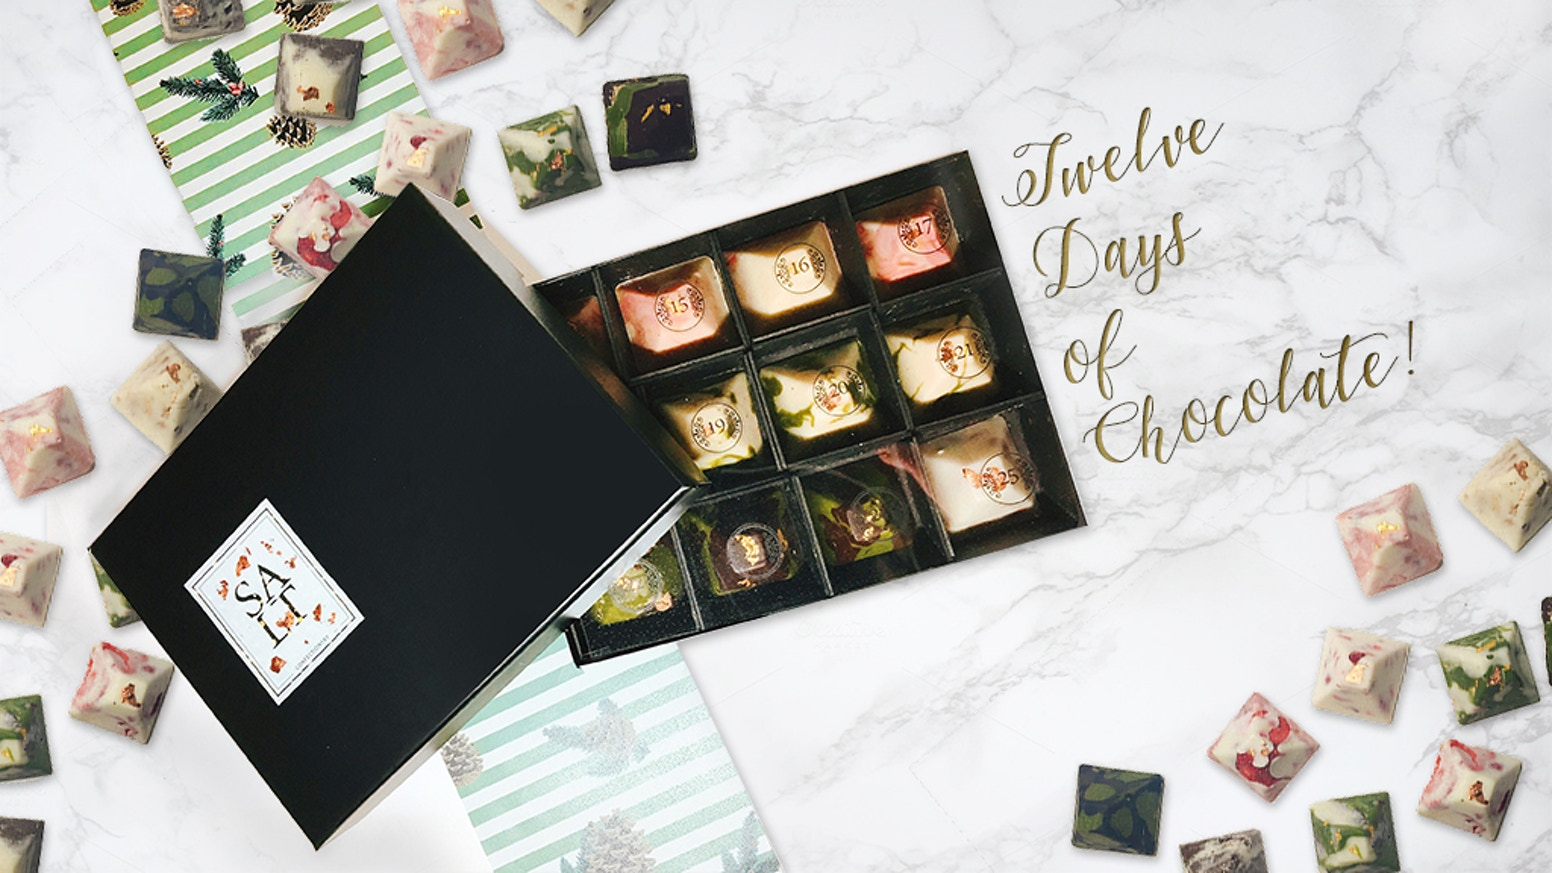 Ho ho ho! Countdown to Christmas with a box of twelve beautifully crafted artisanal chocolates!